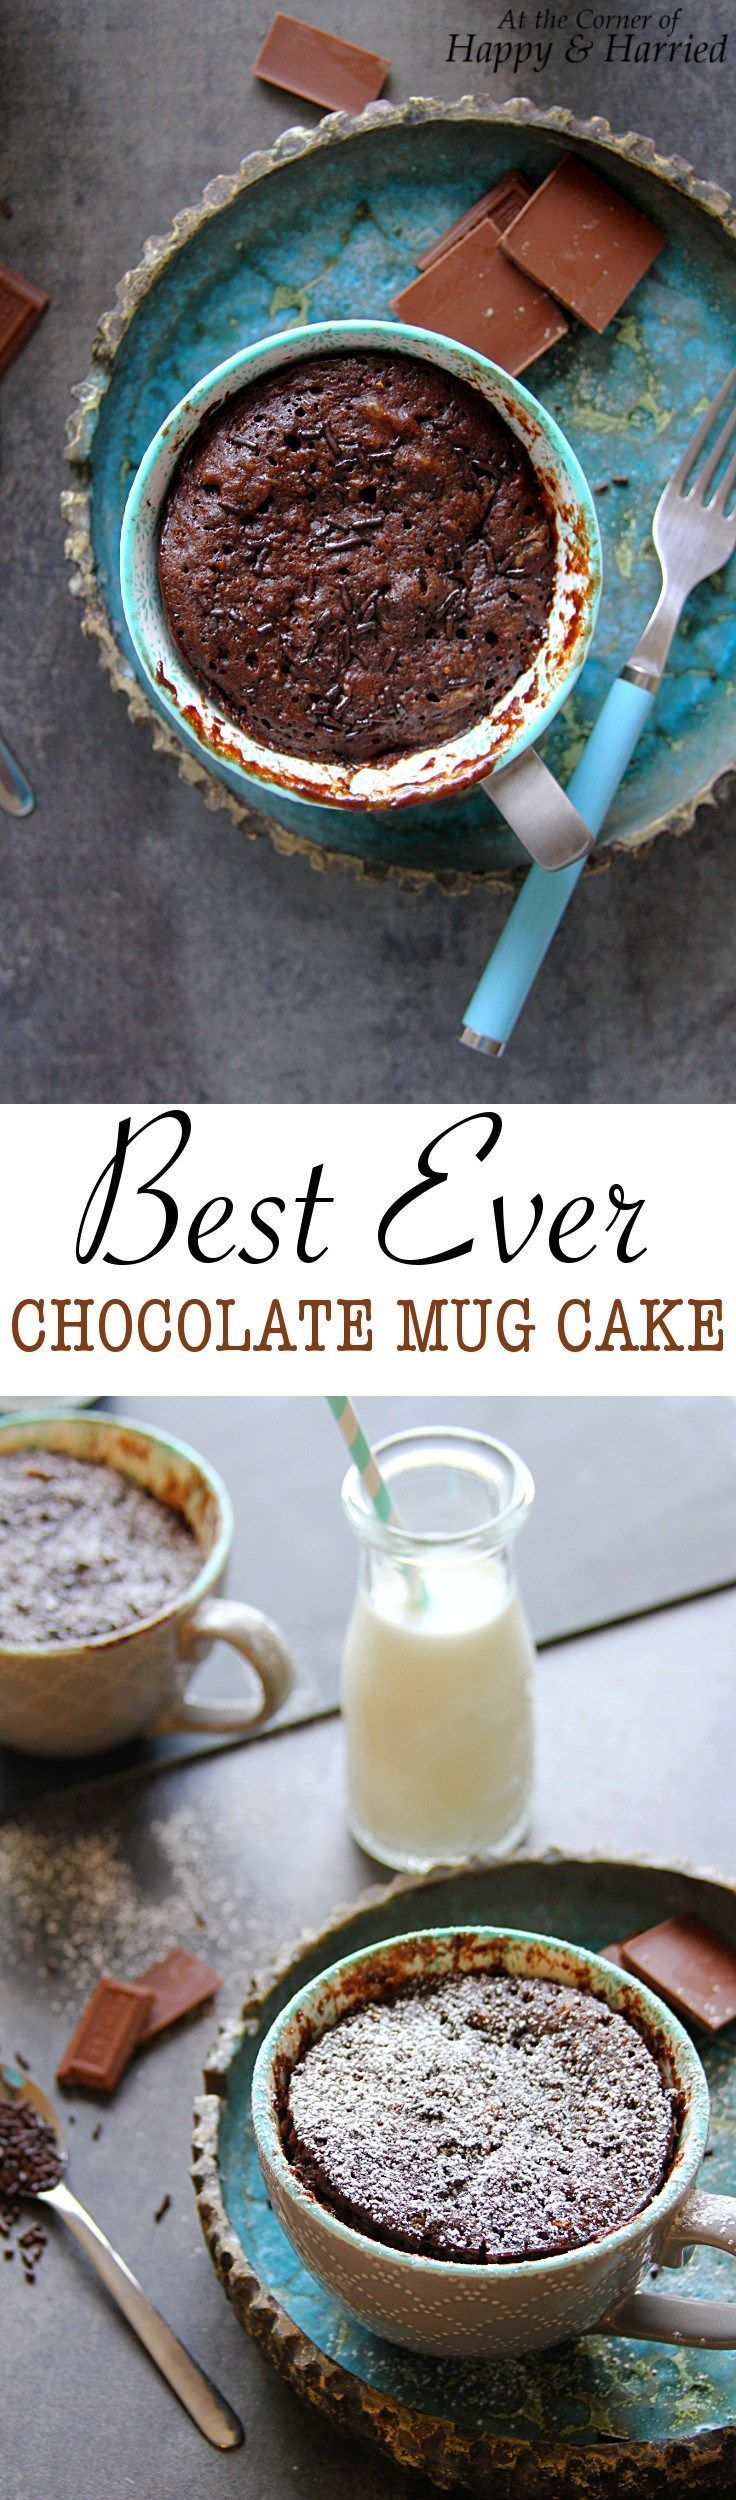 BEST EVER CHOCOLATE MUG CAKE - HAPPY&HARRIED. Satisfy your wicked chocolate cake cravings with the bestest, moistest and easiest one-minute chocolate mug cake ever. #happyandharried #chocolate #mug #cake #recipe #dessert